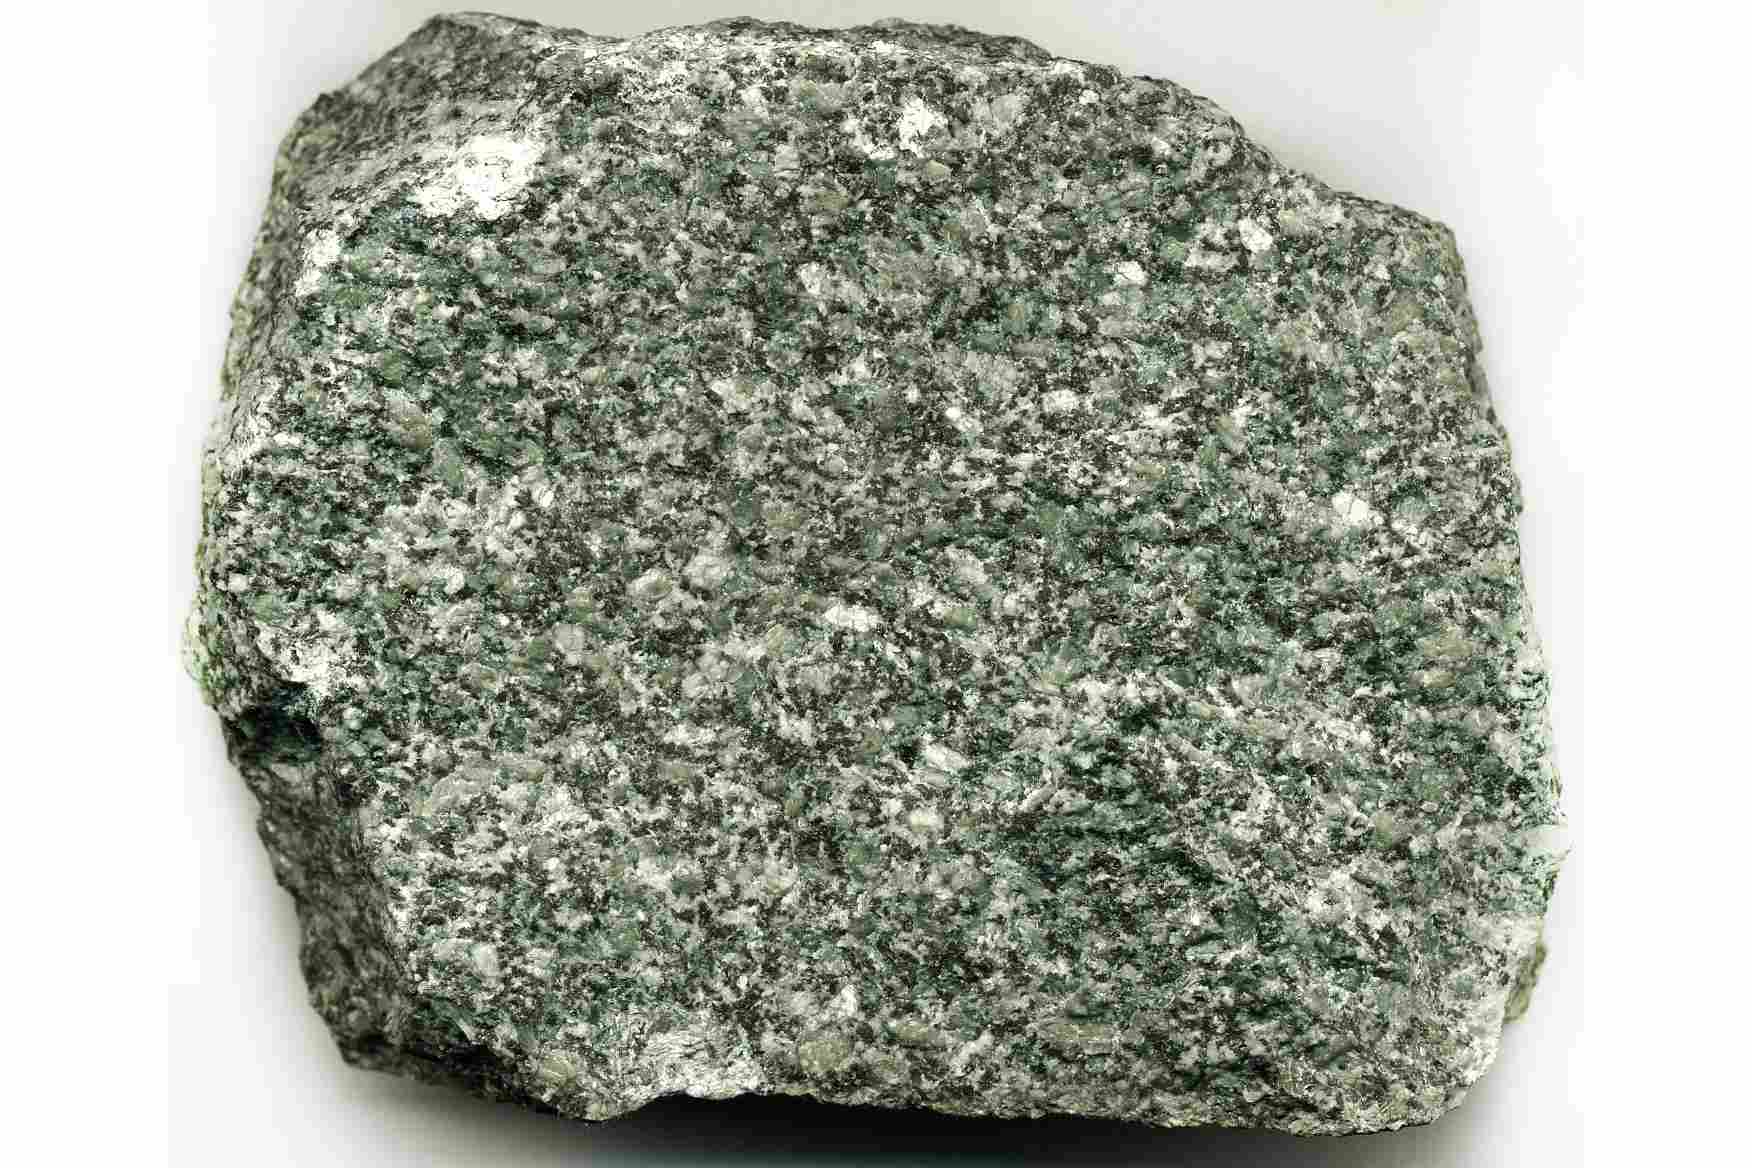 Common Green Rocks and Minerals